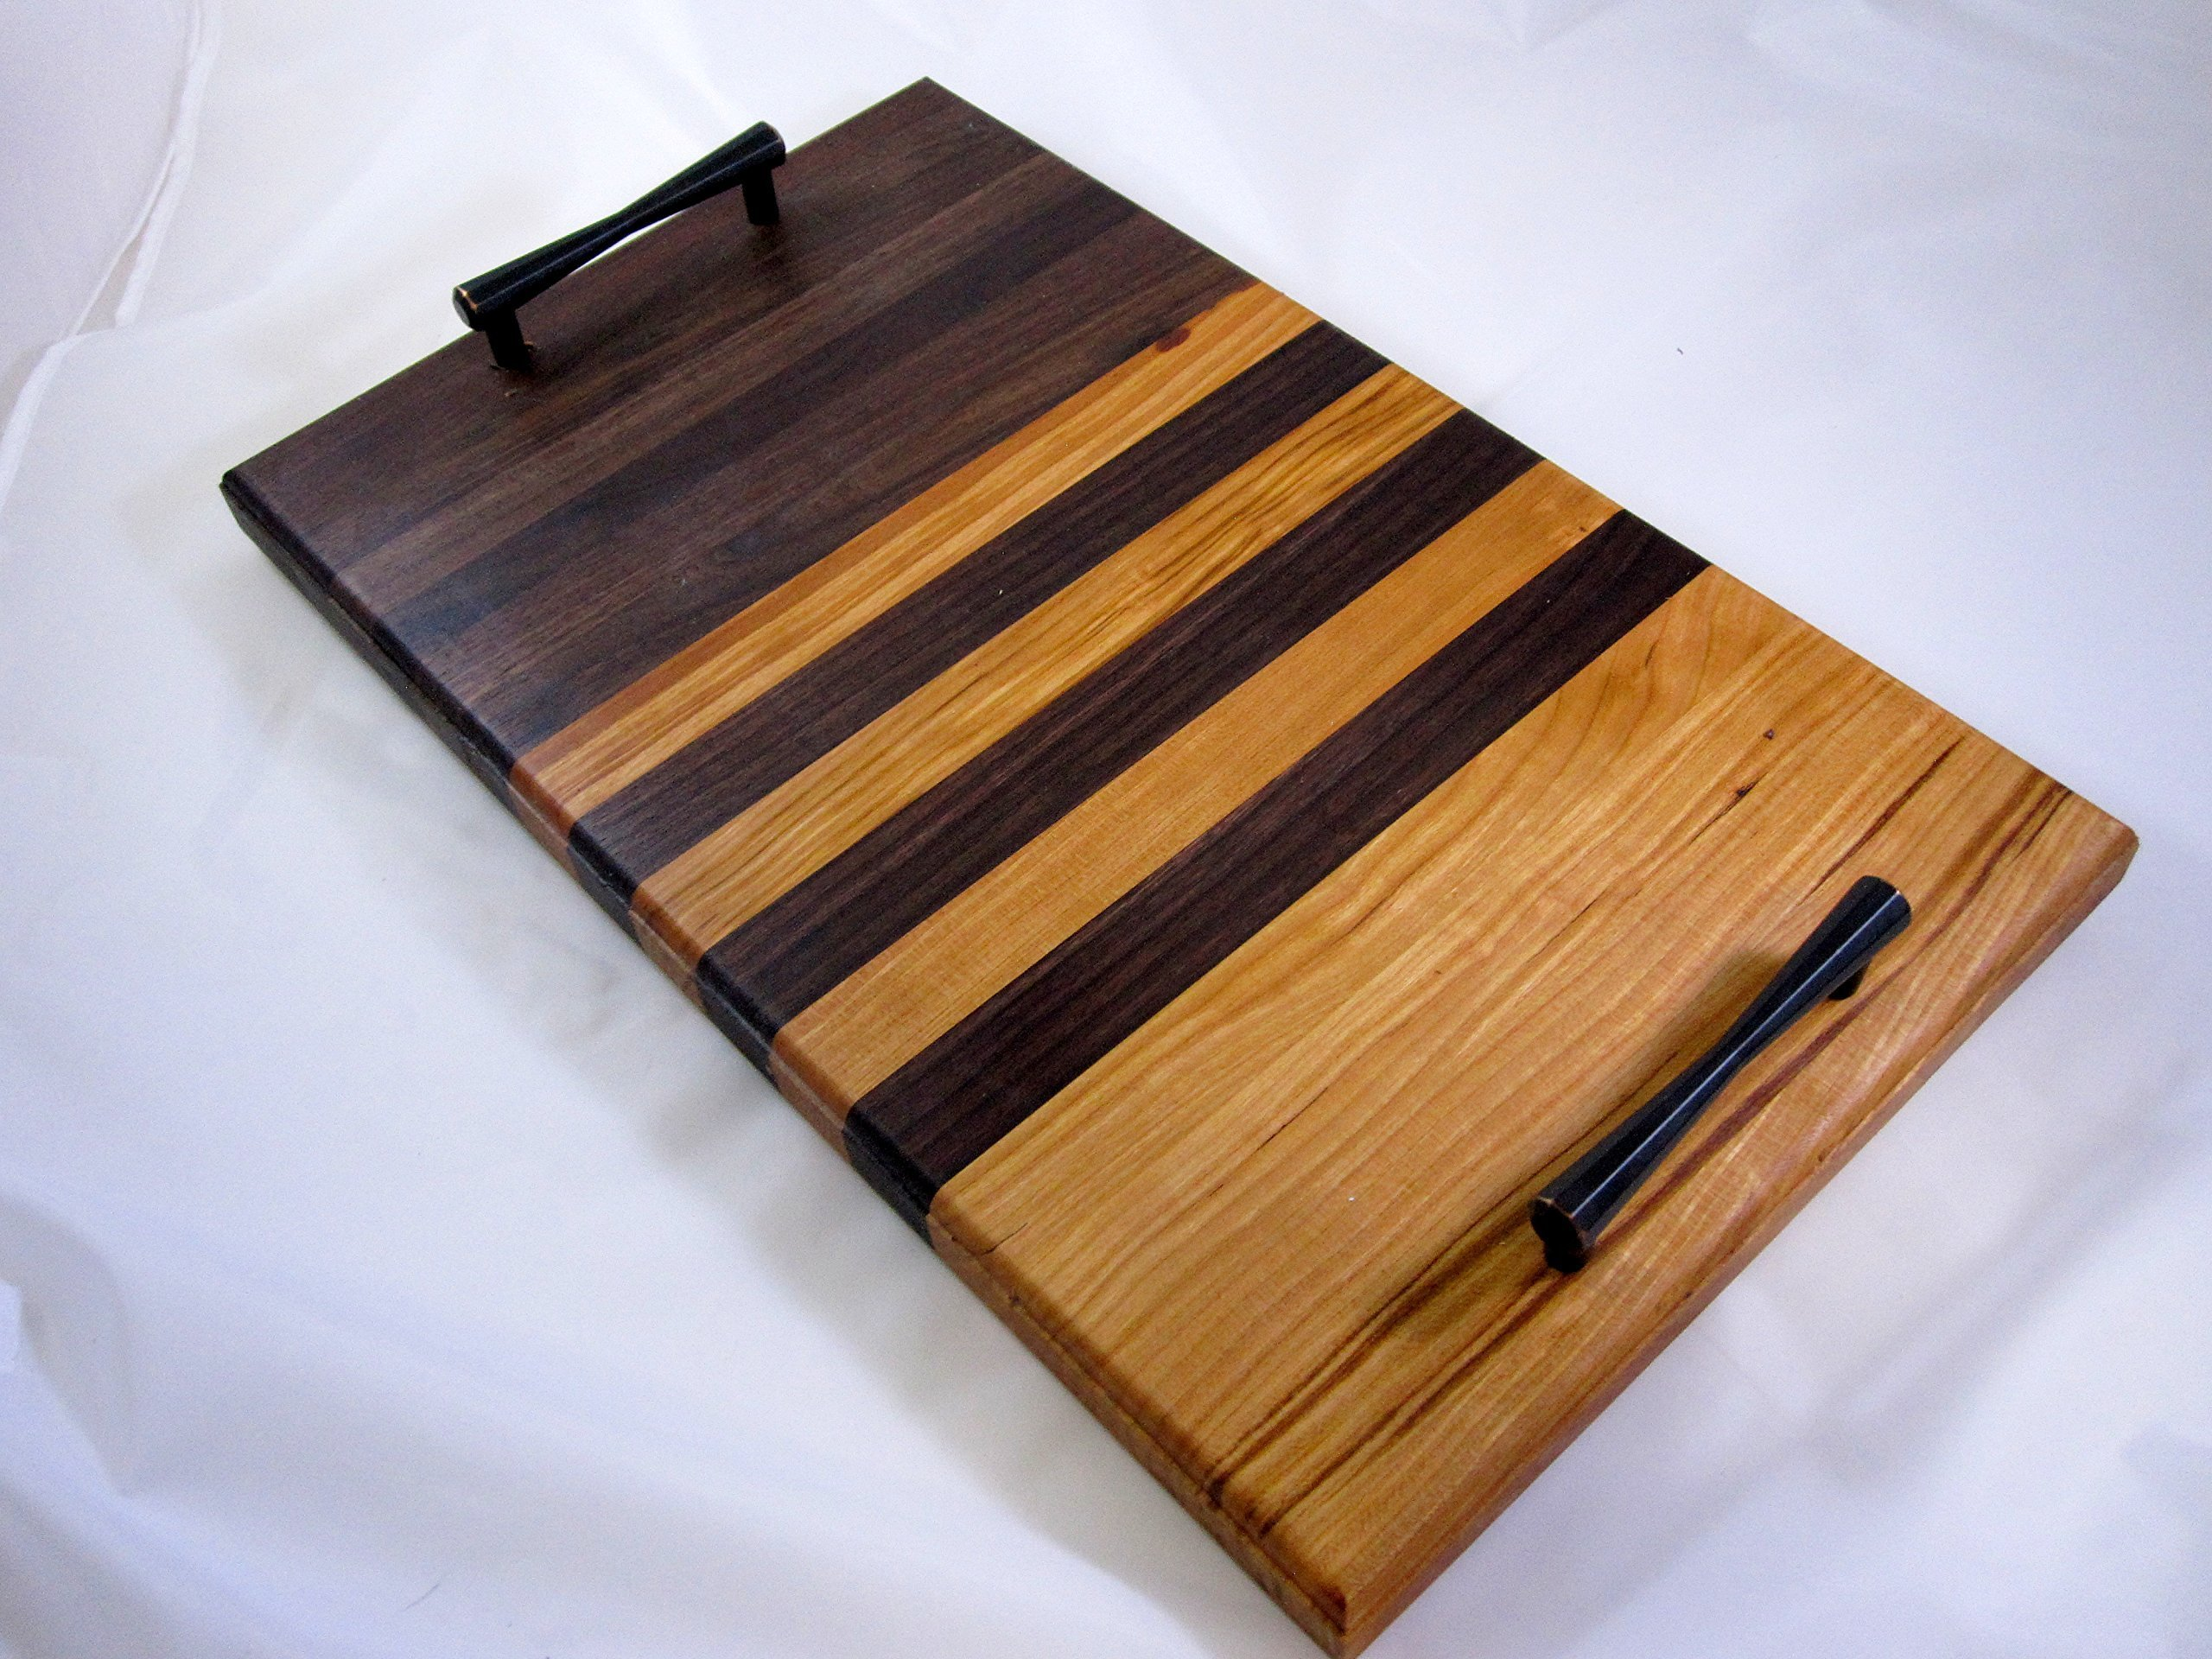 Handmade Charcuterie Cheese board platter #A57 with Handles, ready to ship